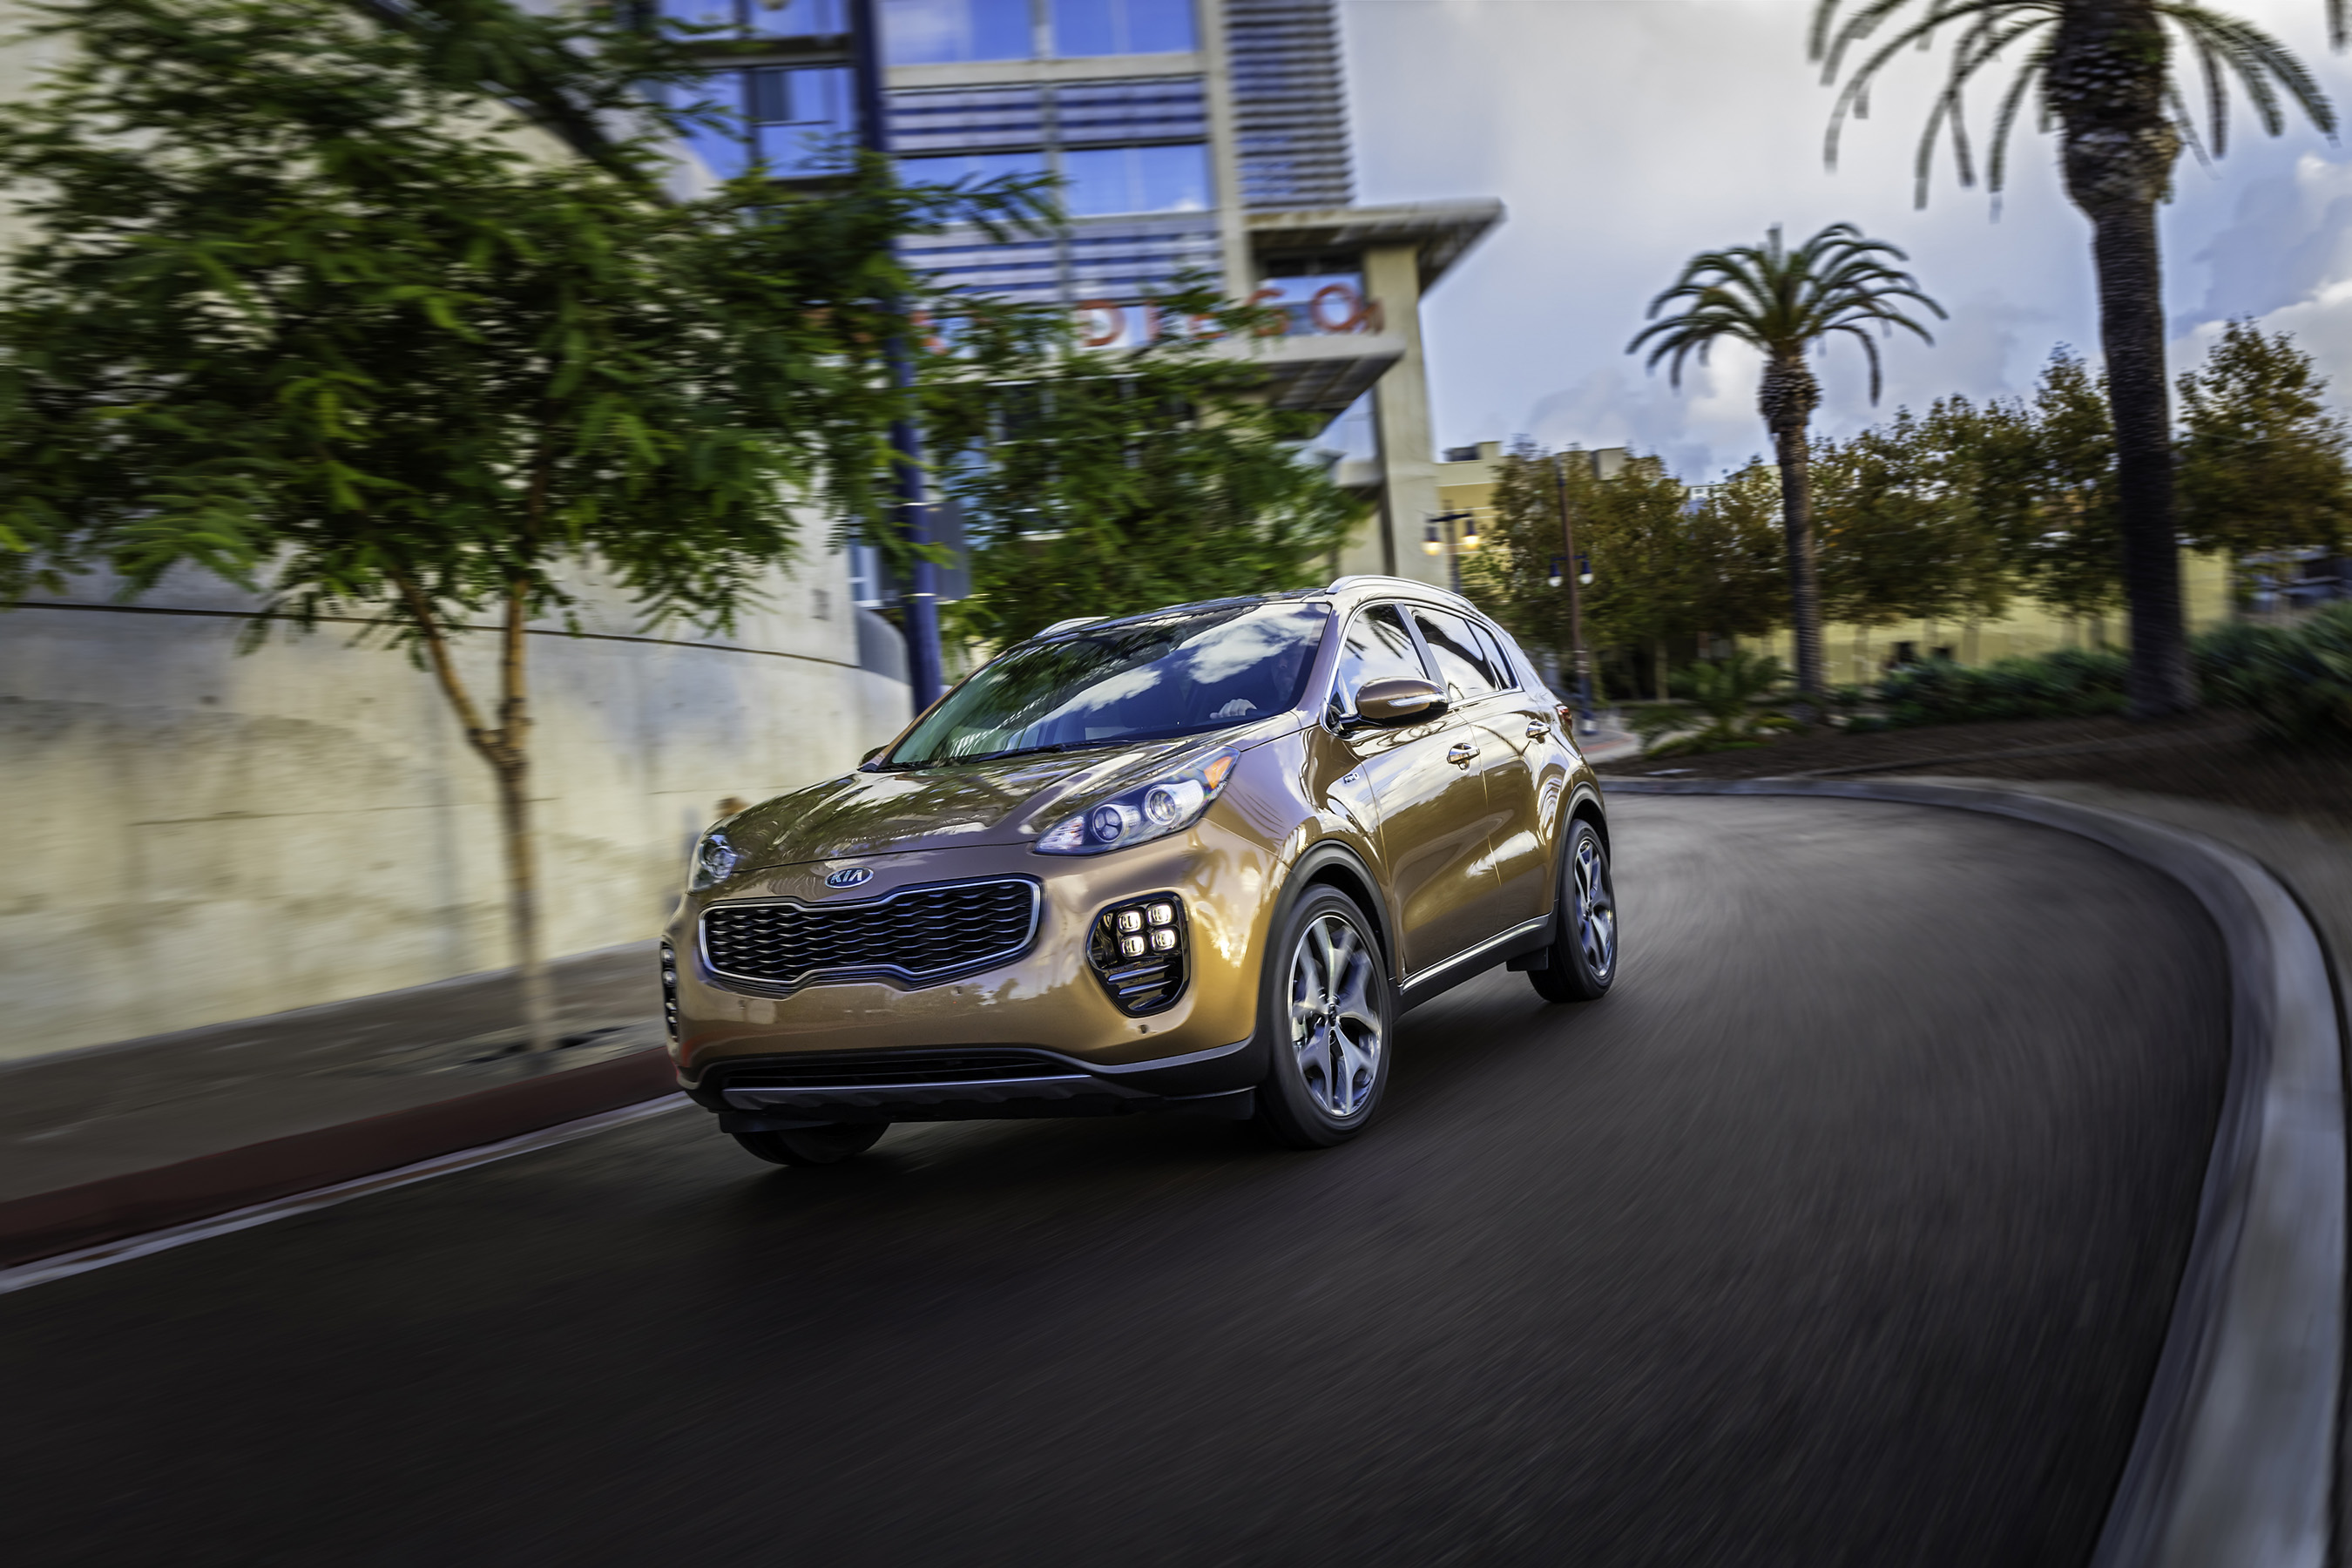 Kia unveils all-new 2017 Sportage at Los Angeles Auto Show.